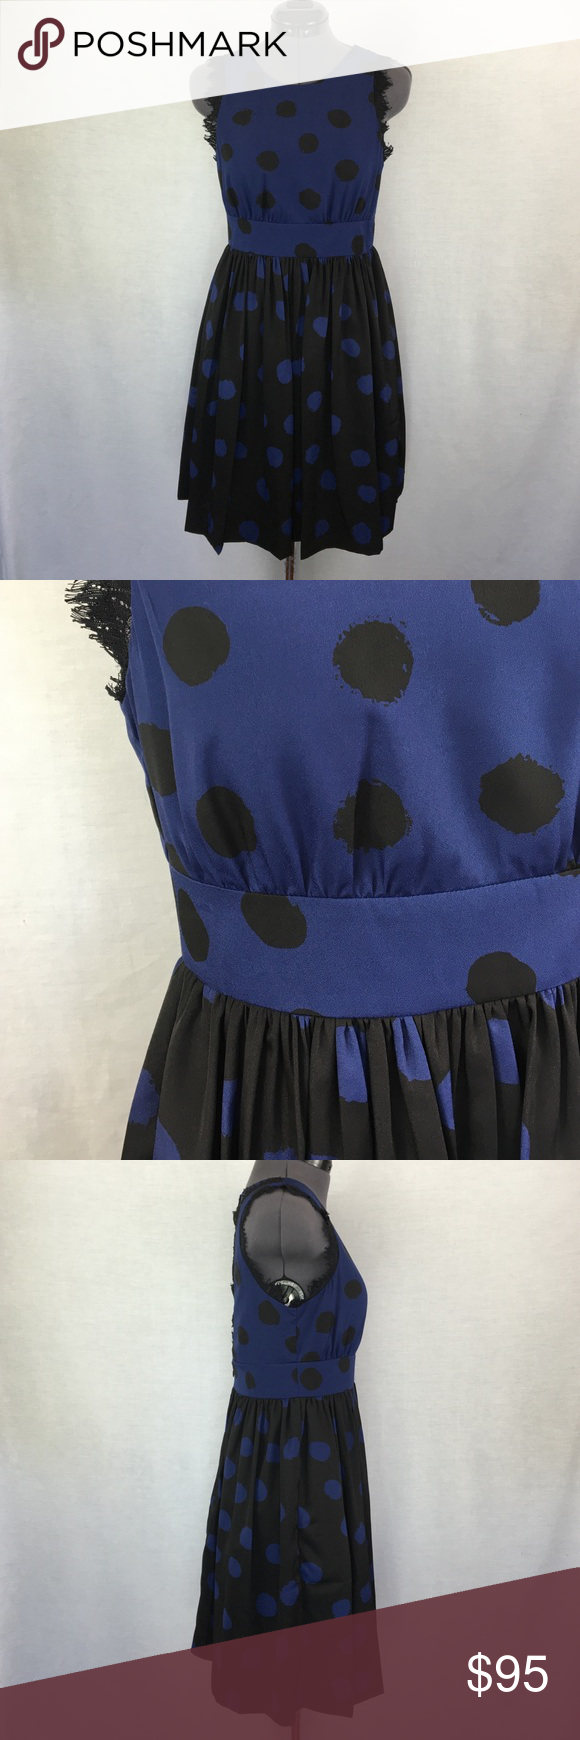 "Anthro ""Split Dots Dress"" by Corey Lynn Calter Gorgeous details! Black dots on blue top and blue dots on black skirt. Set in waist. Center back zip on skirt, open back with a two button placket on the top. Beautiful black lace around arm holes and along open back. Has pockets! Bust measured flat across approximately 16.5 inches. Set in waist is 14 inches flat across. Shoulder to hem is approx. 34 inches. Size 4 Petite, TTS. 100% polyester with polyester lining. In perfect condition…"